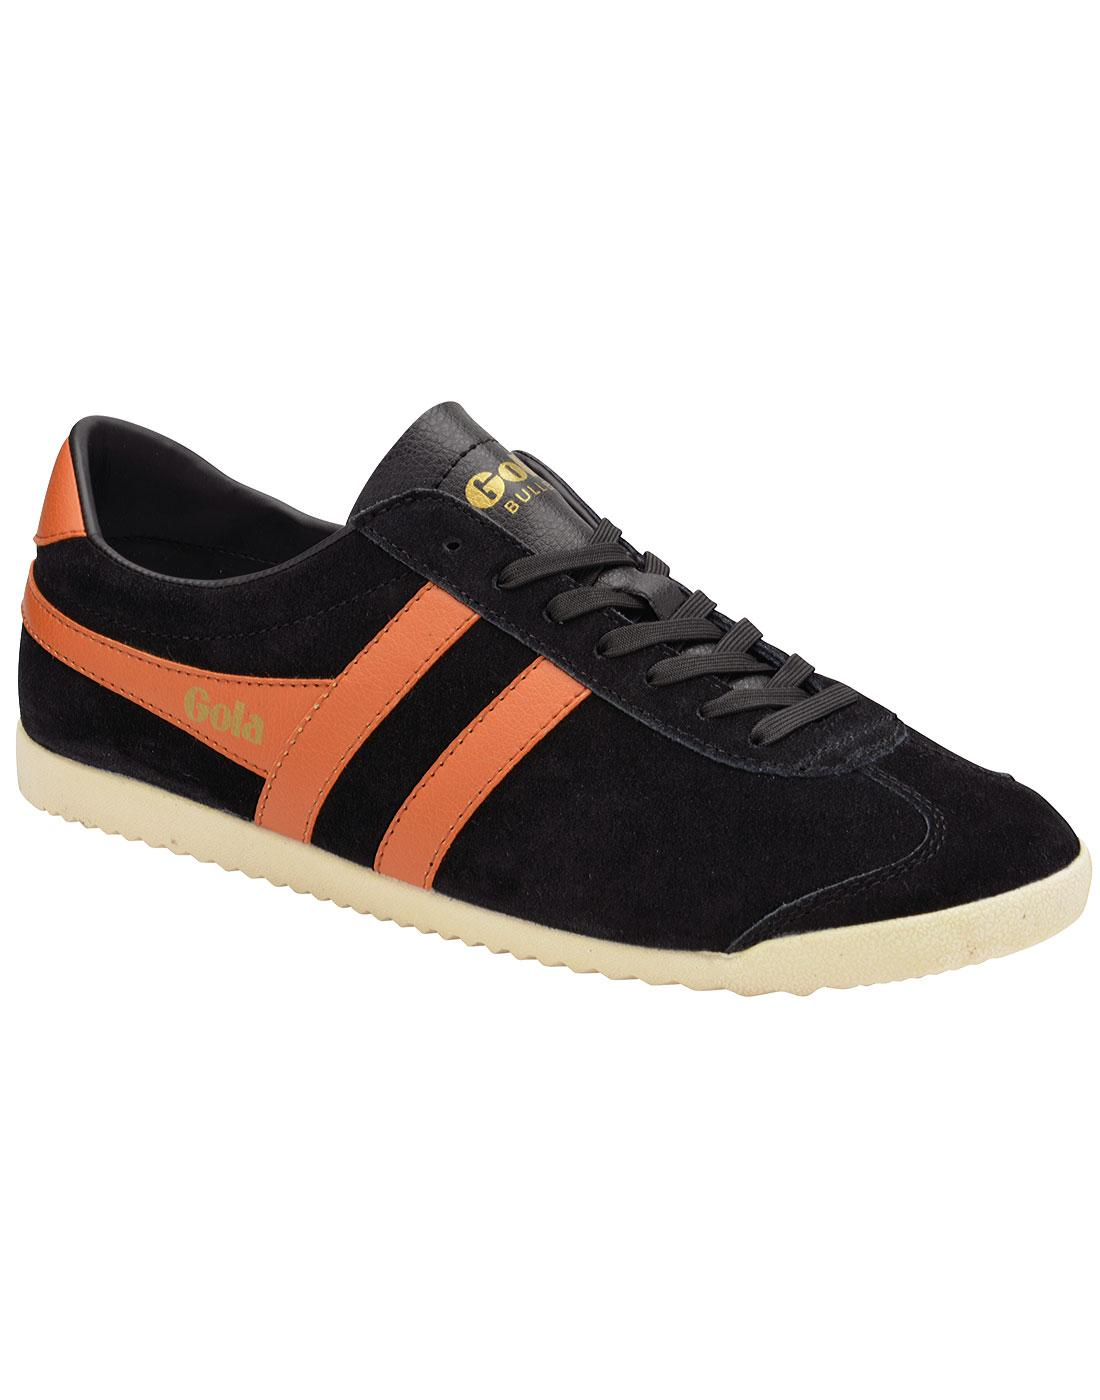 Bullet Suede GOLA Retro 70s Indie Trainers (B/MO)